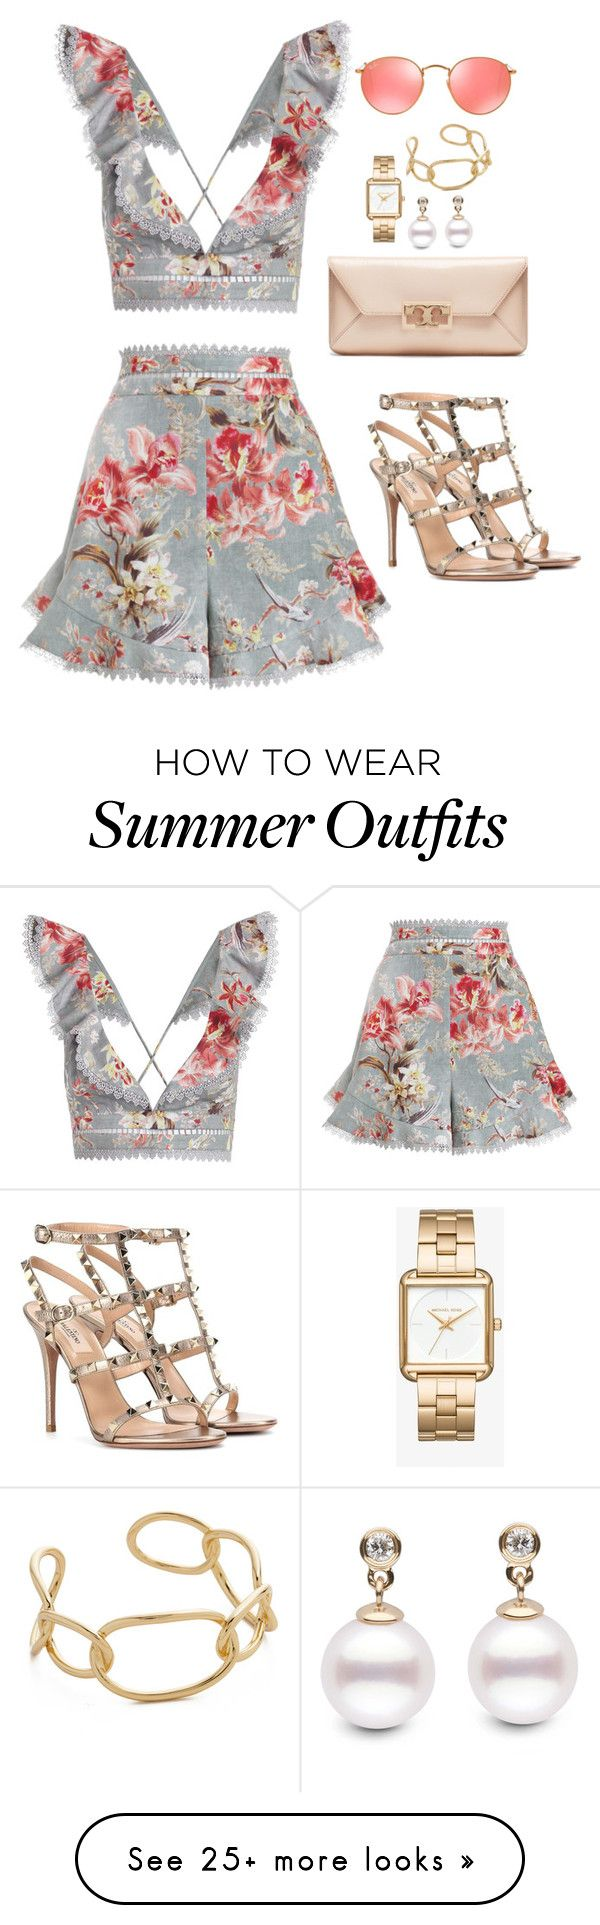 """Outfit 476"" by caa123 on Polyvore featuring Zimmermann, Valentino, Tory Burch, Michael Kors, Jules Smith and Ray-Ban"